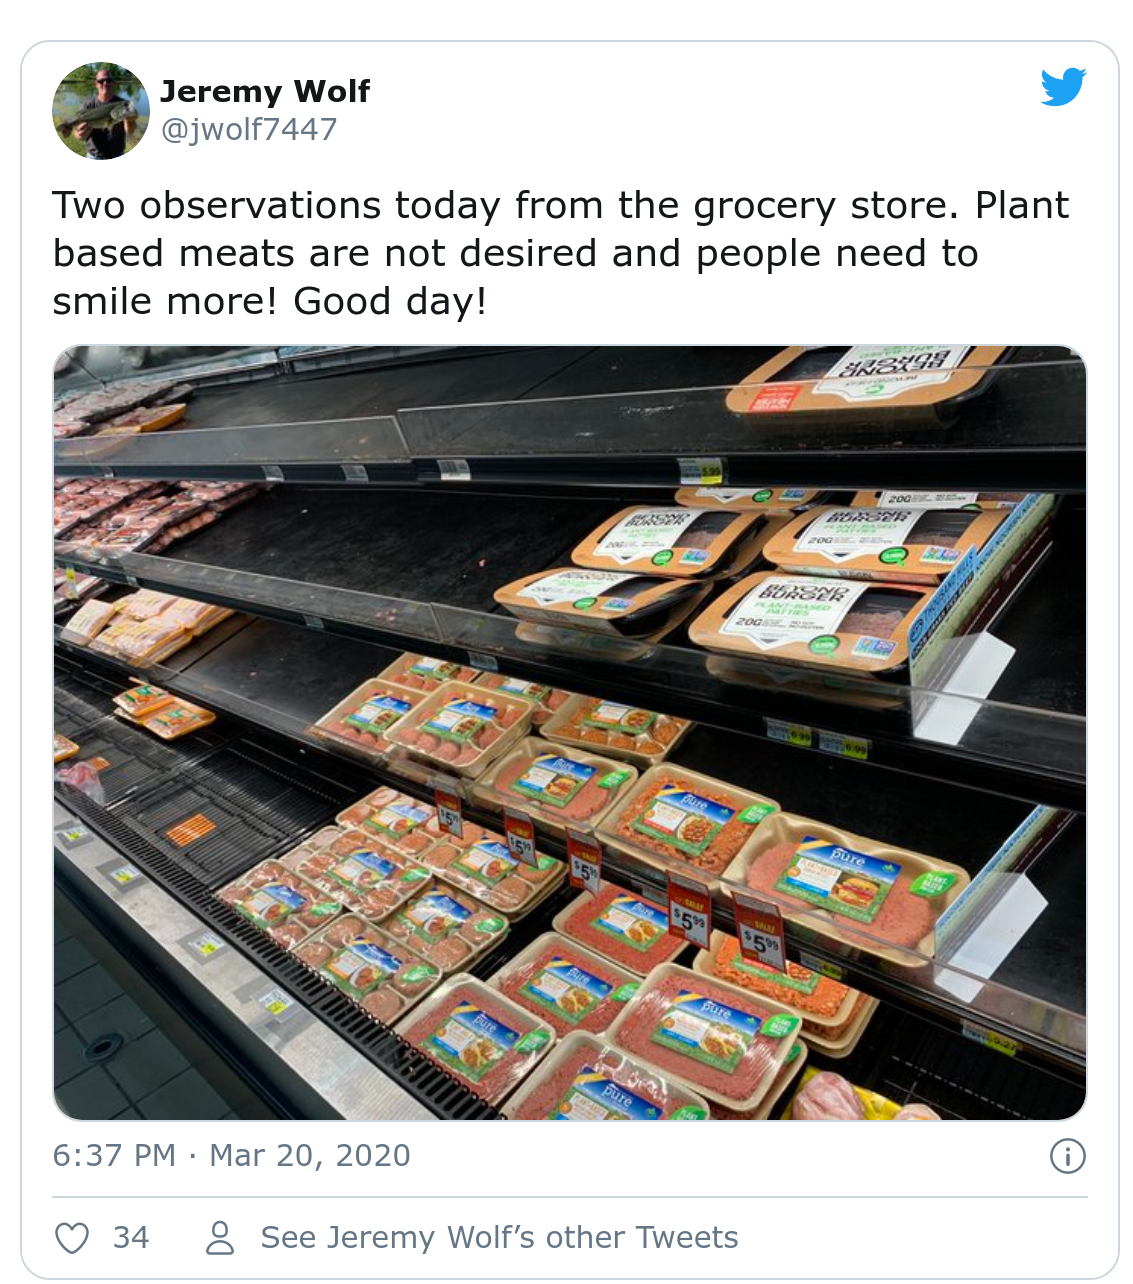 "Tweet captioned "" Two observations today from the grocery store. Plant based meats are not desired and people need to smile more! Good day!"" and an image of a grocery store with shelves stocked with plant based meat."